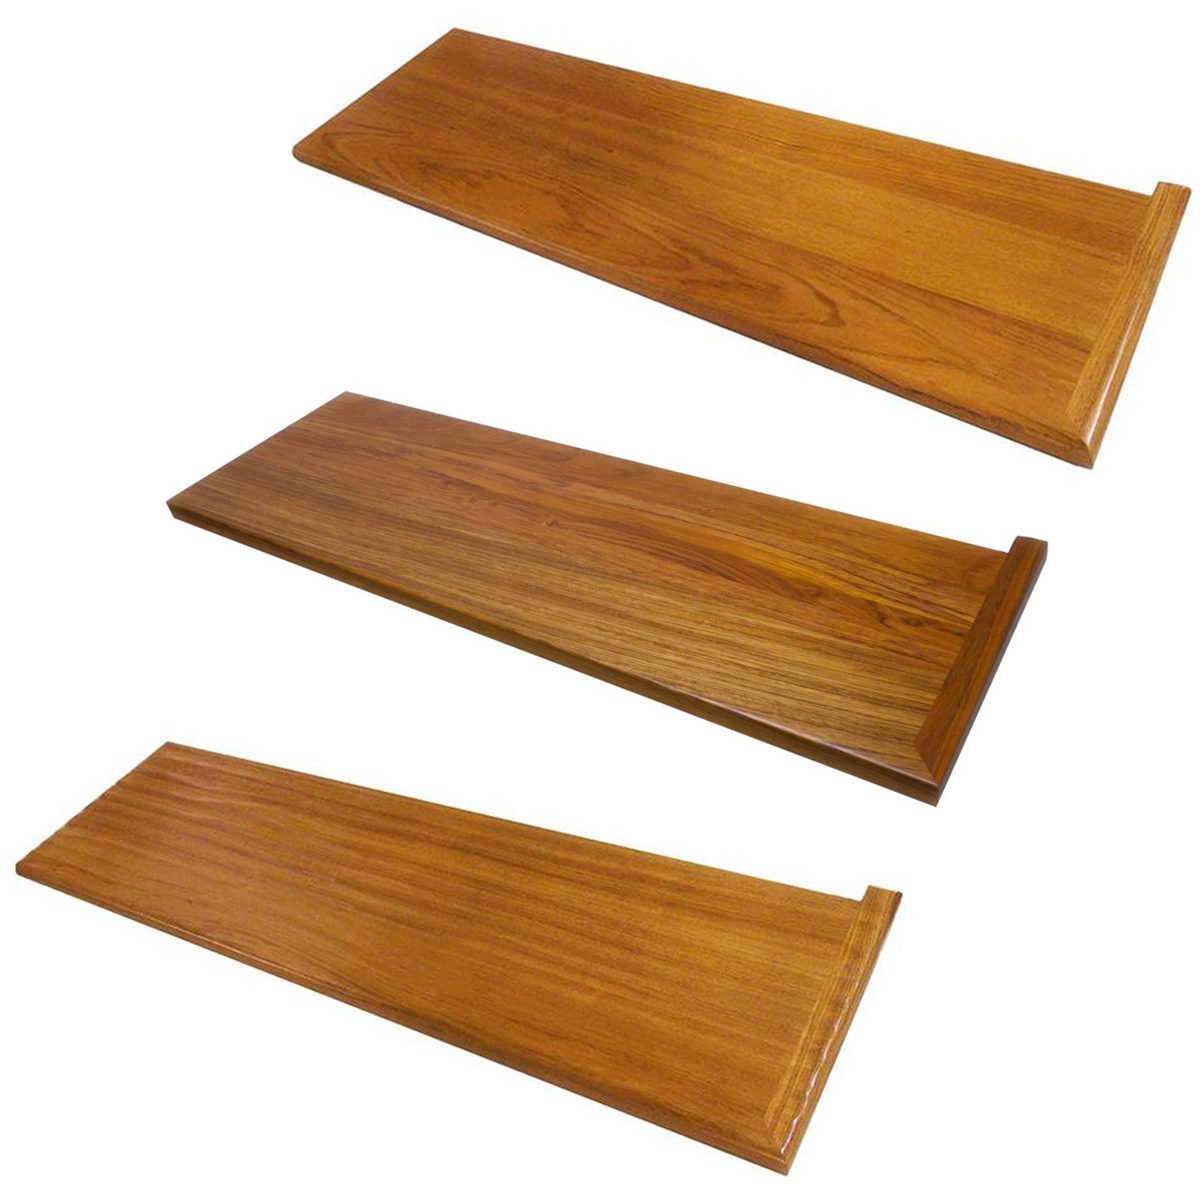 Best Solid Wood Stair Treads Wood Stair Treads Oak Stairs 400 x 300